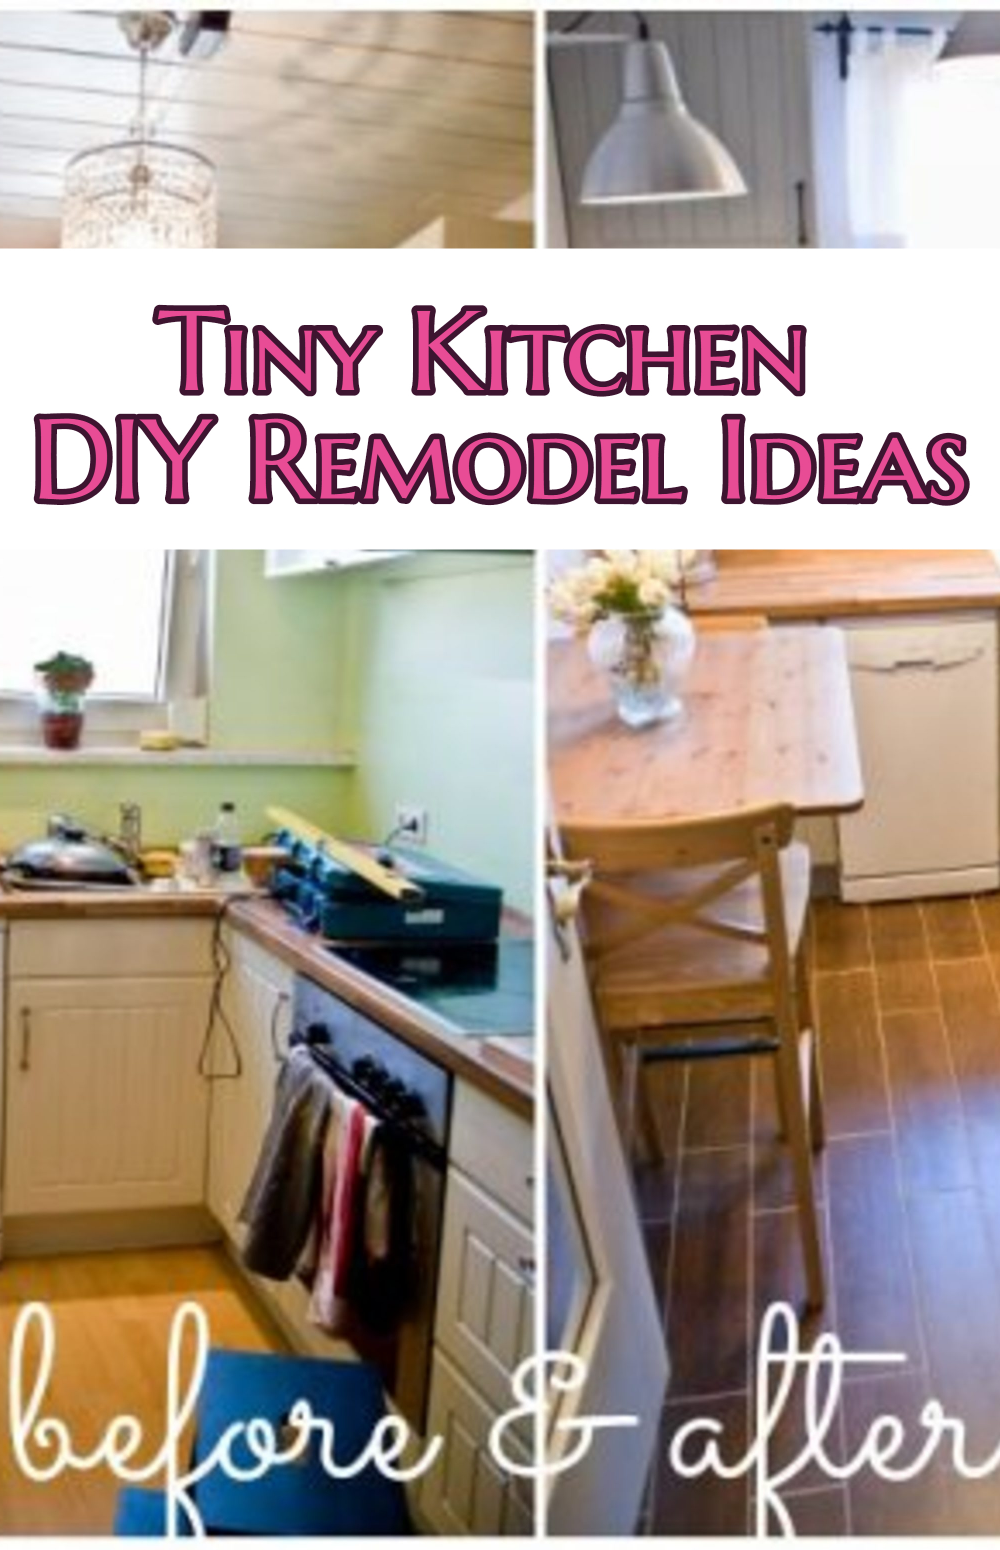 Small Kitchen Ideas: DIY Tiny Kitchen Remodel results before and after. Great ideas for a kitchen makeover on a budget!